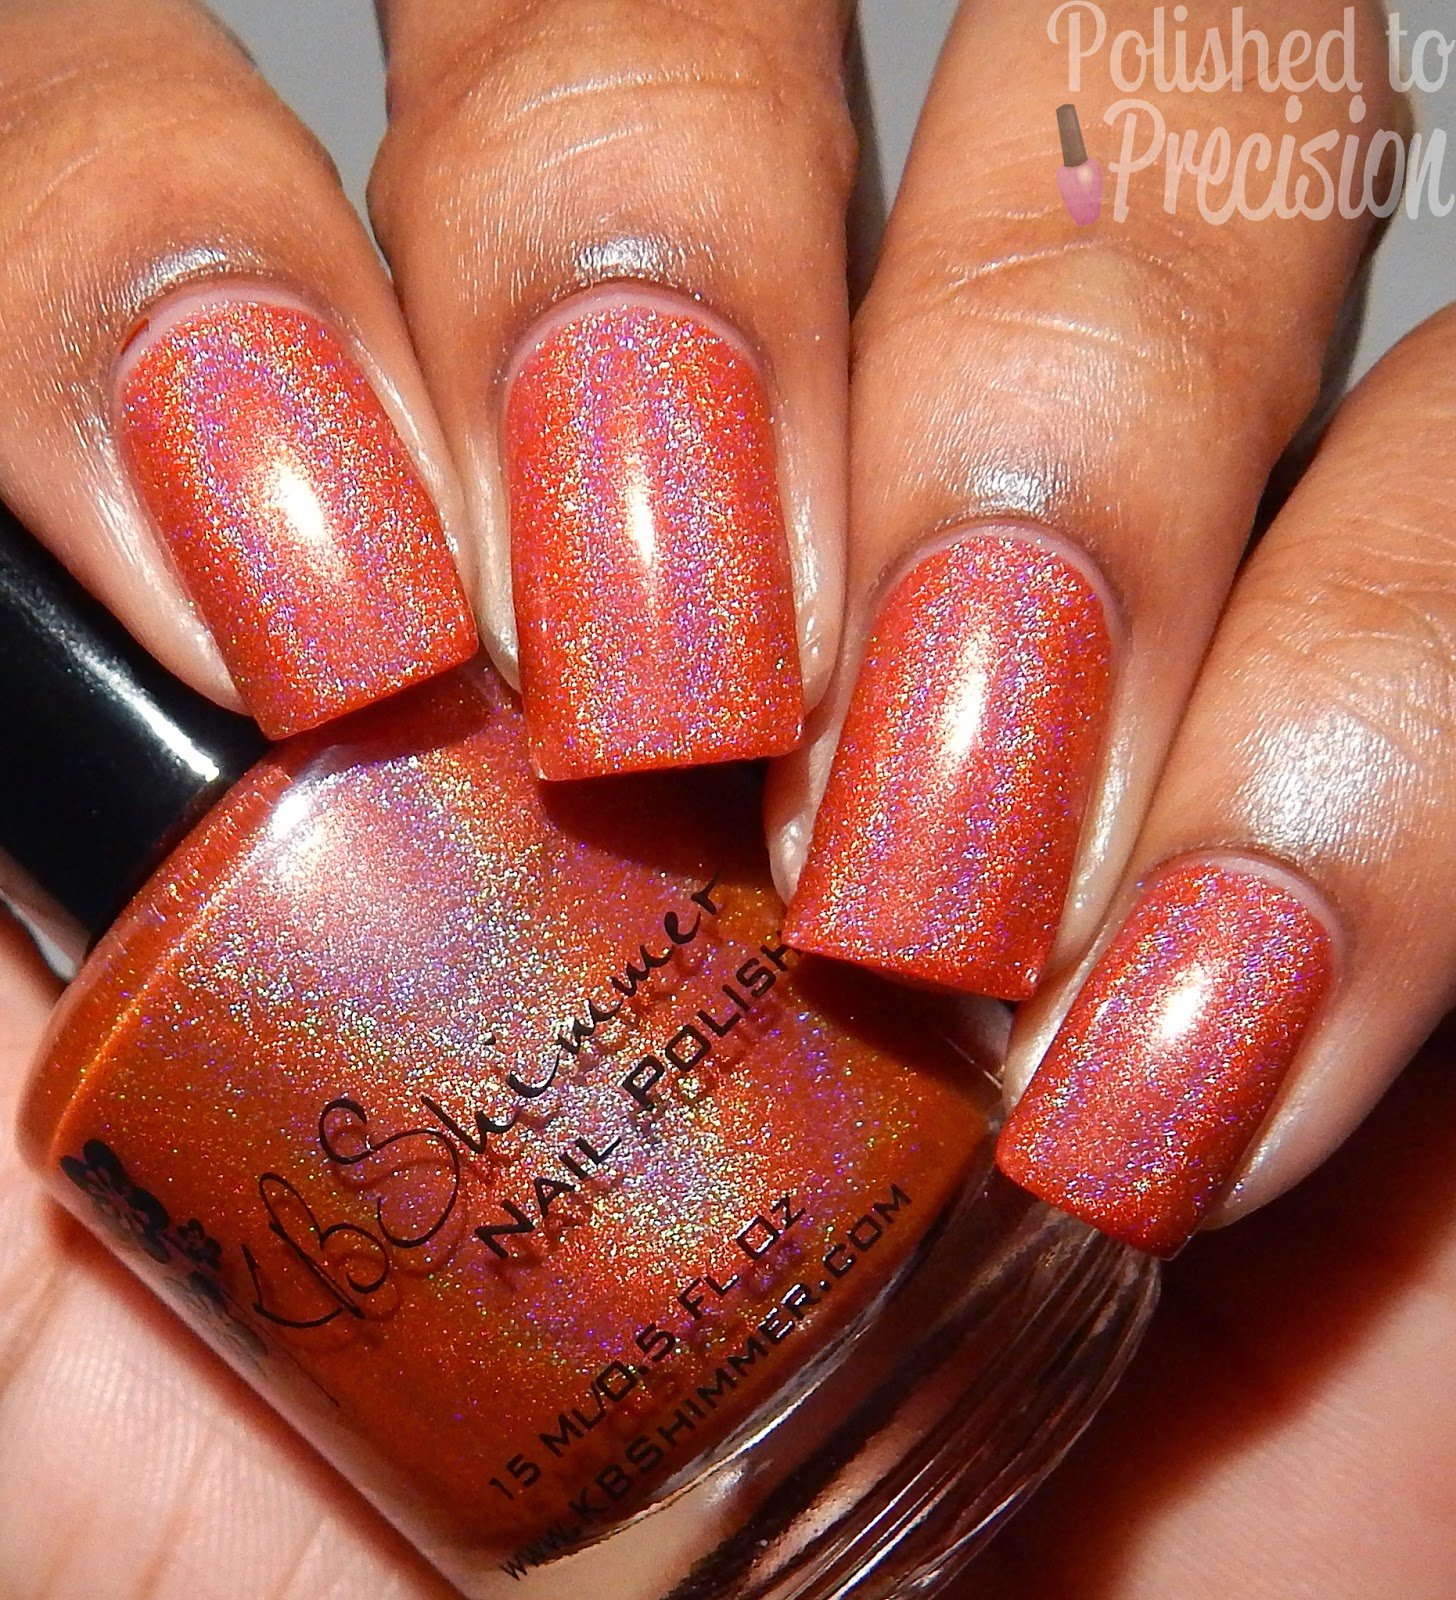 KBShimmer Rust No One